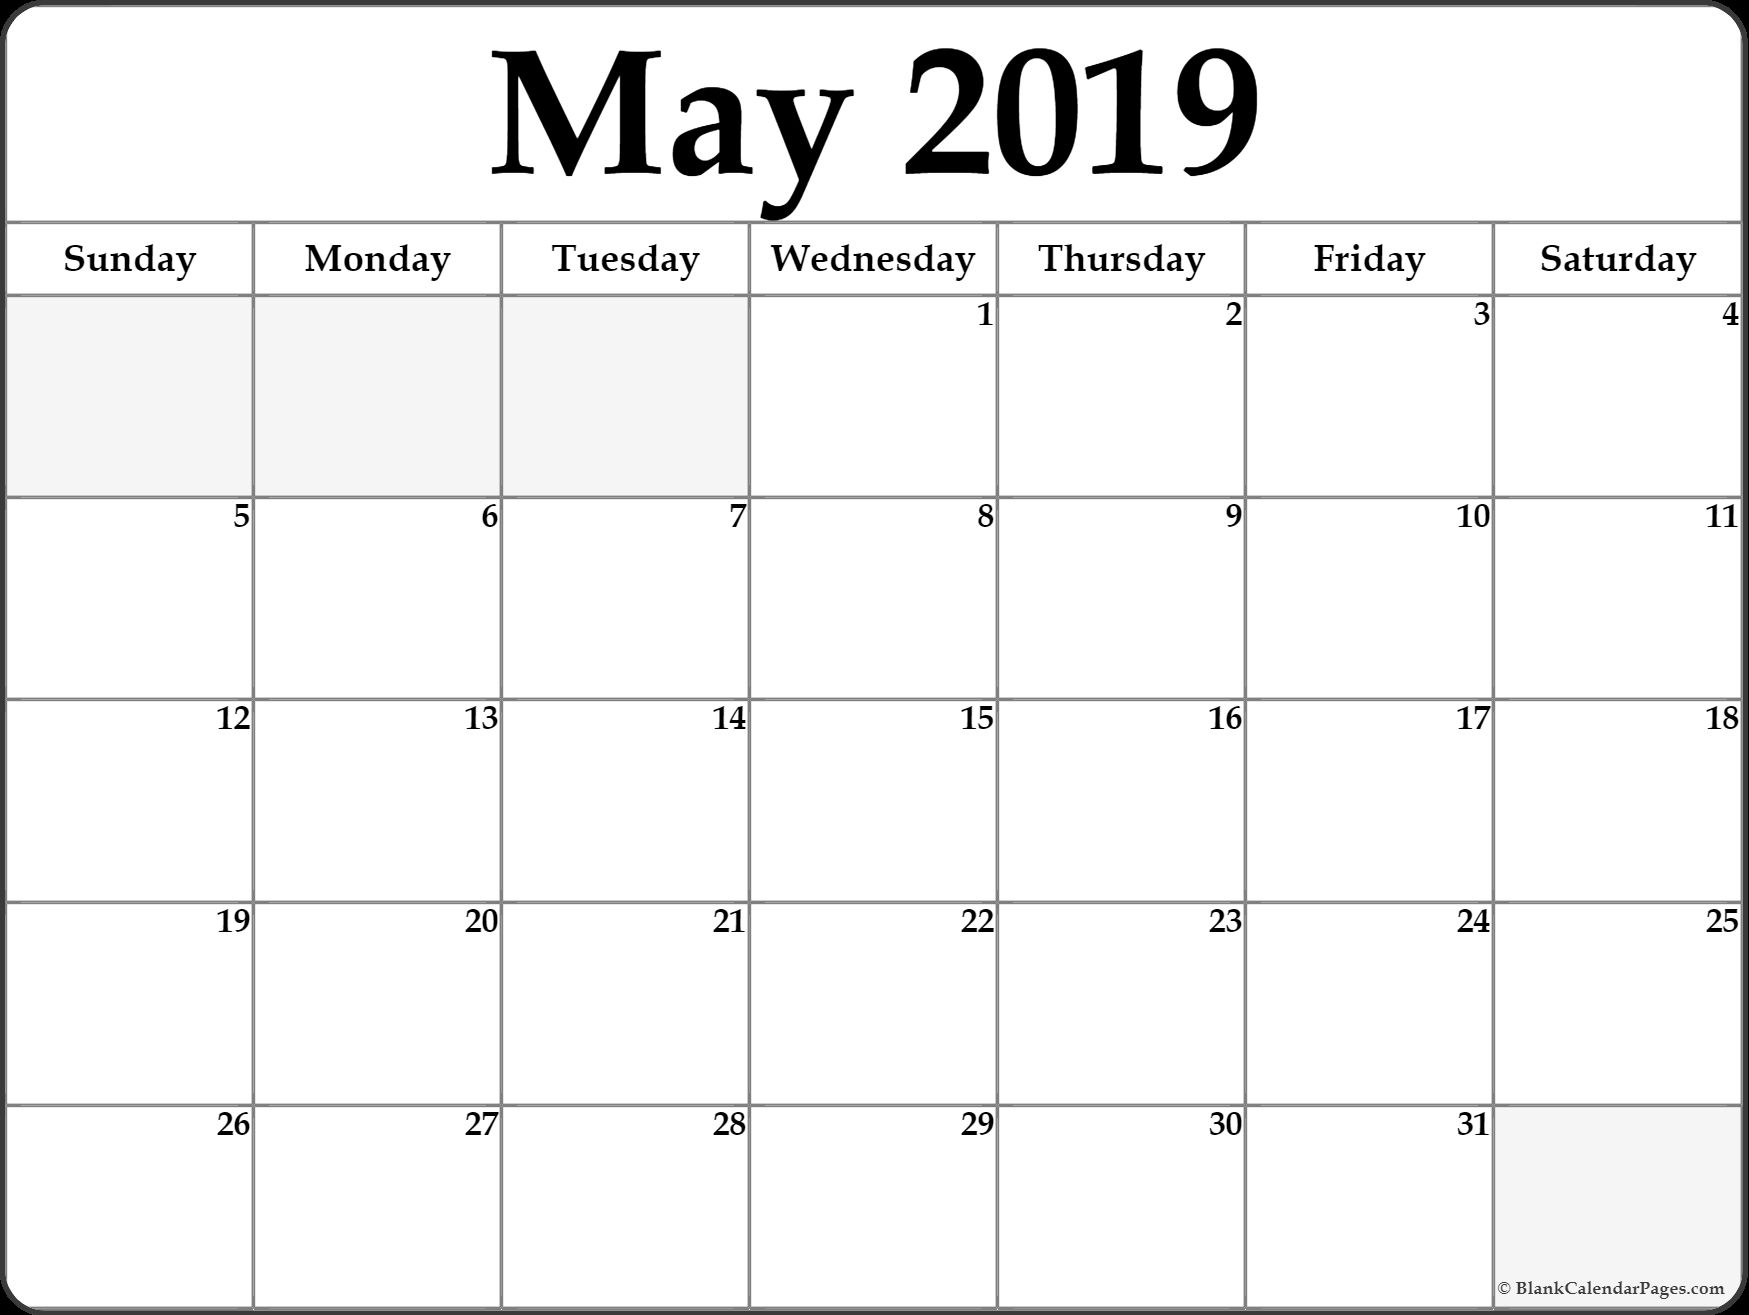 May 2019 Calendar Printable Template Site Provides Calendarmay 2019 with regard to Blank Printable Mini Calendar